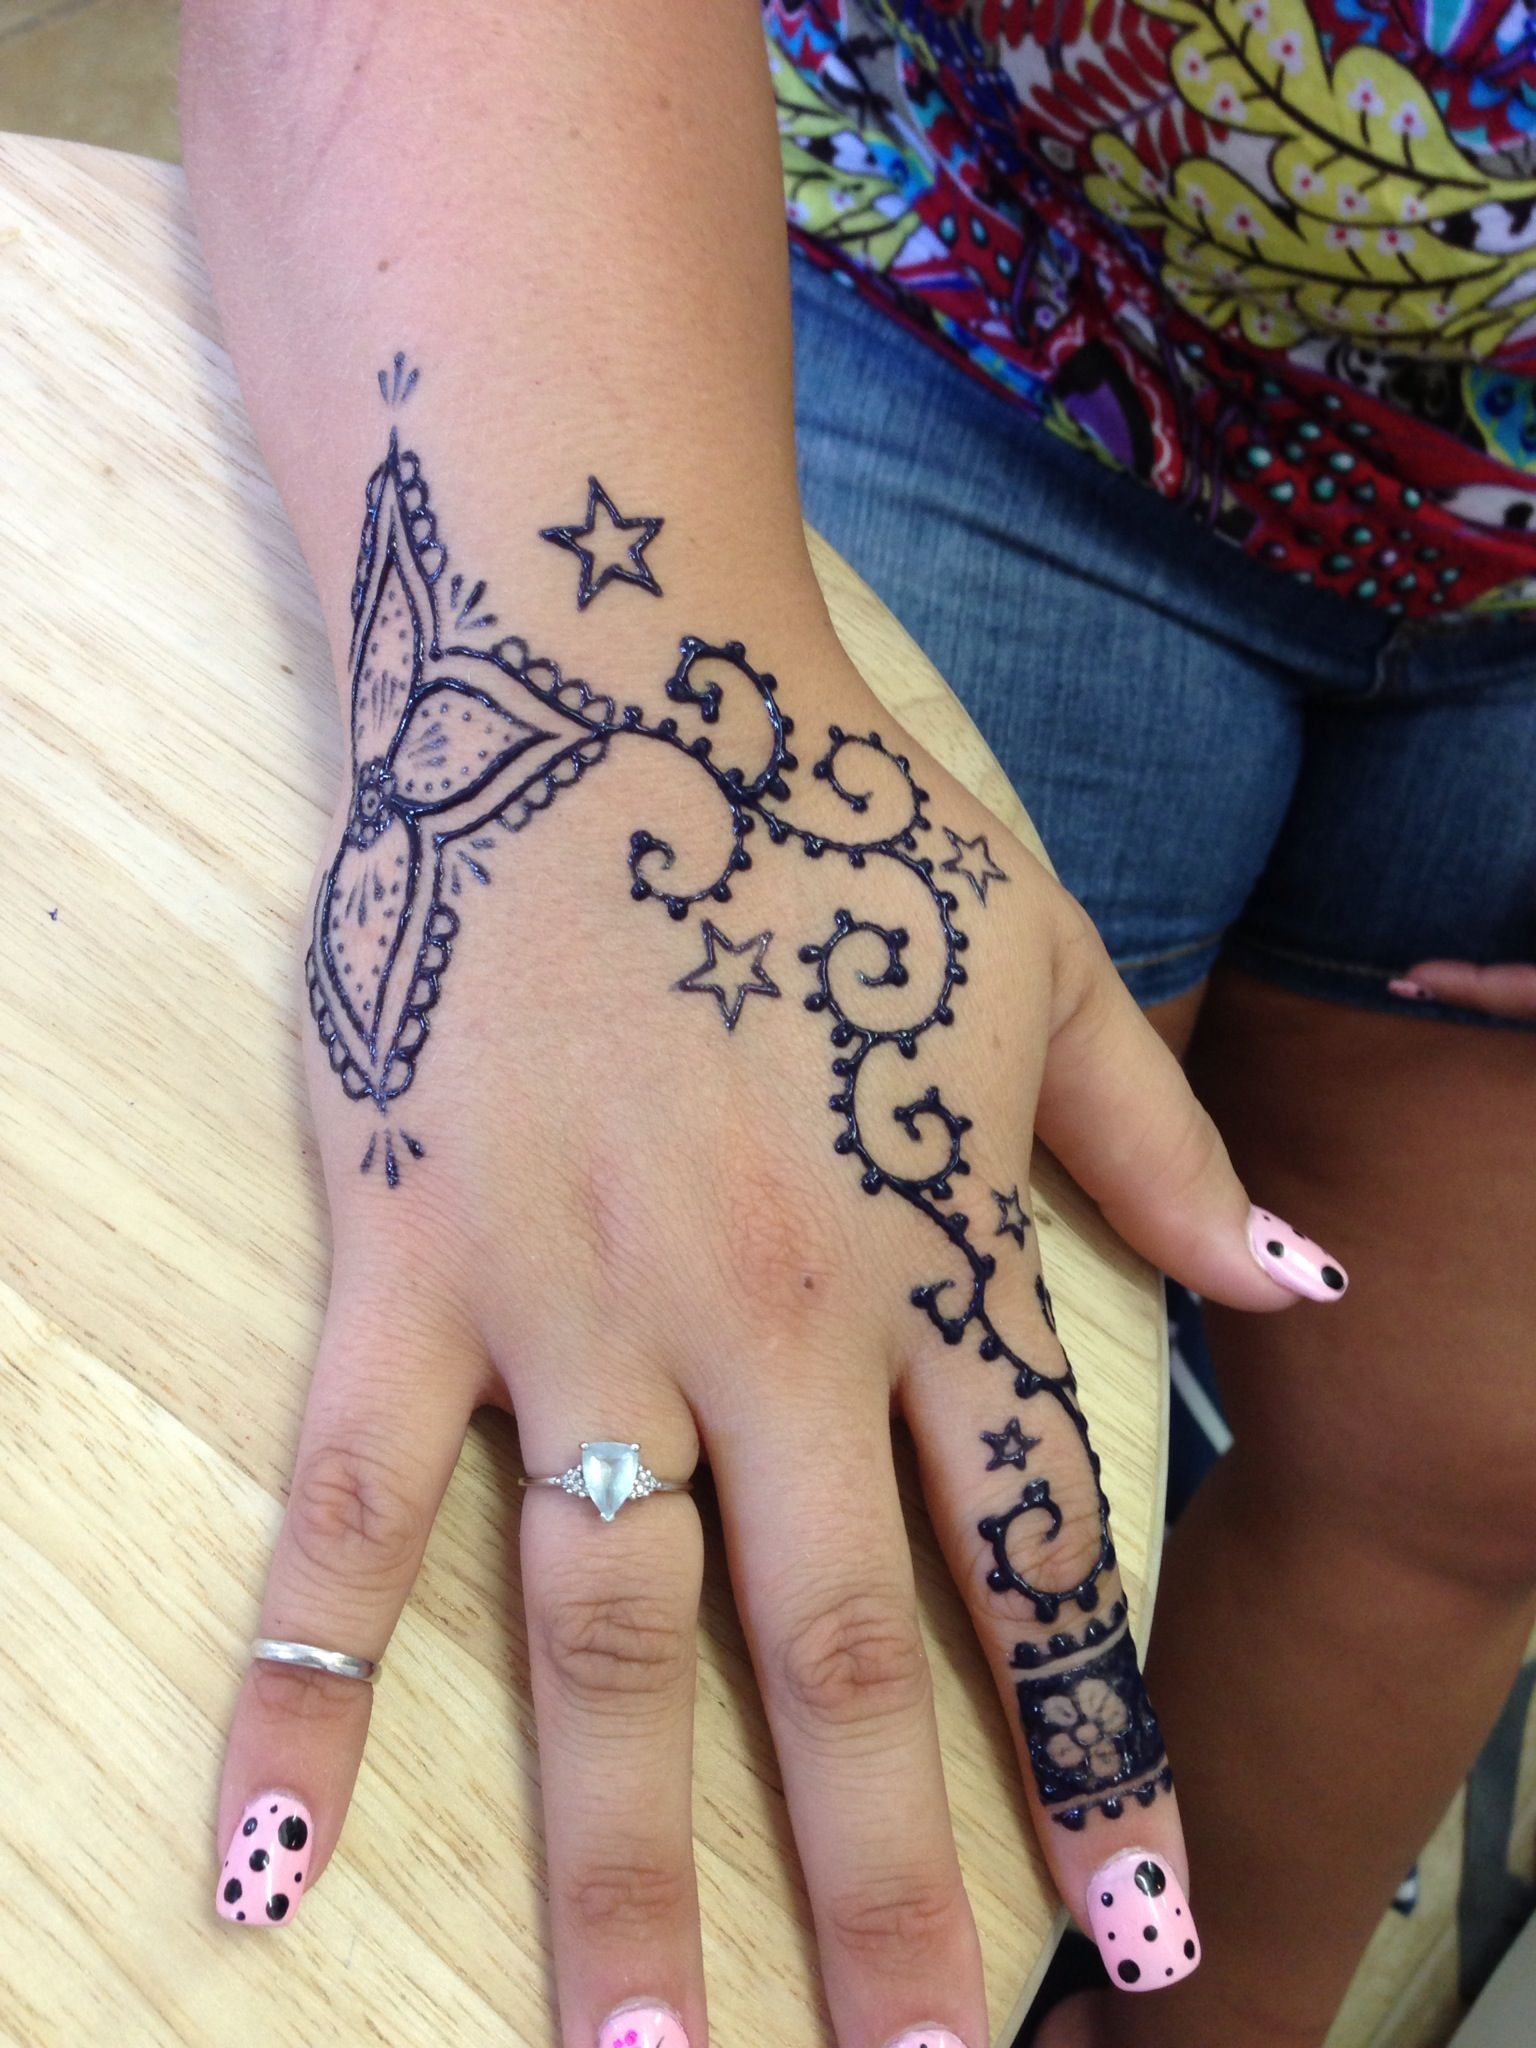 Freehand flower stars and swirls on the hand henna tattoo